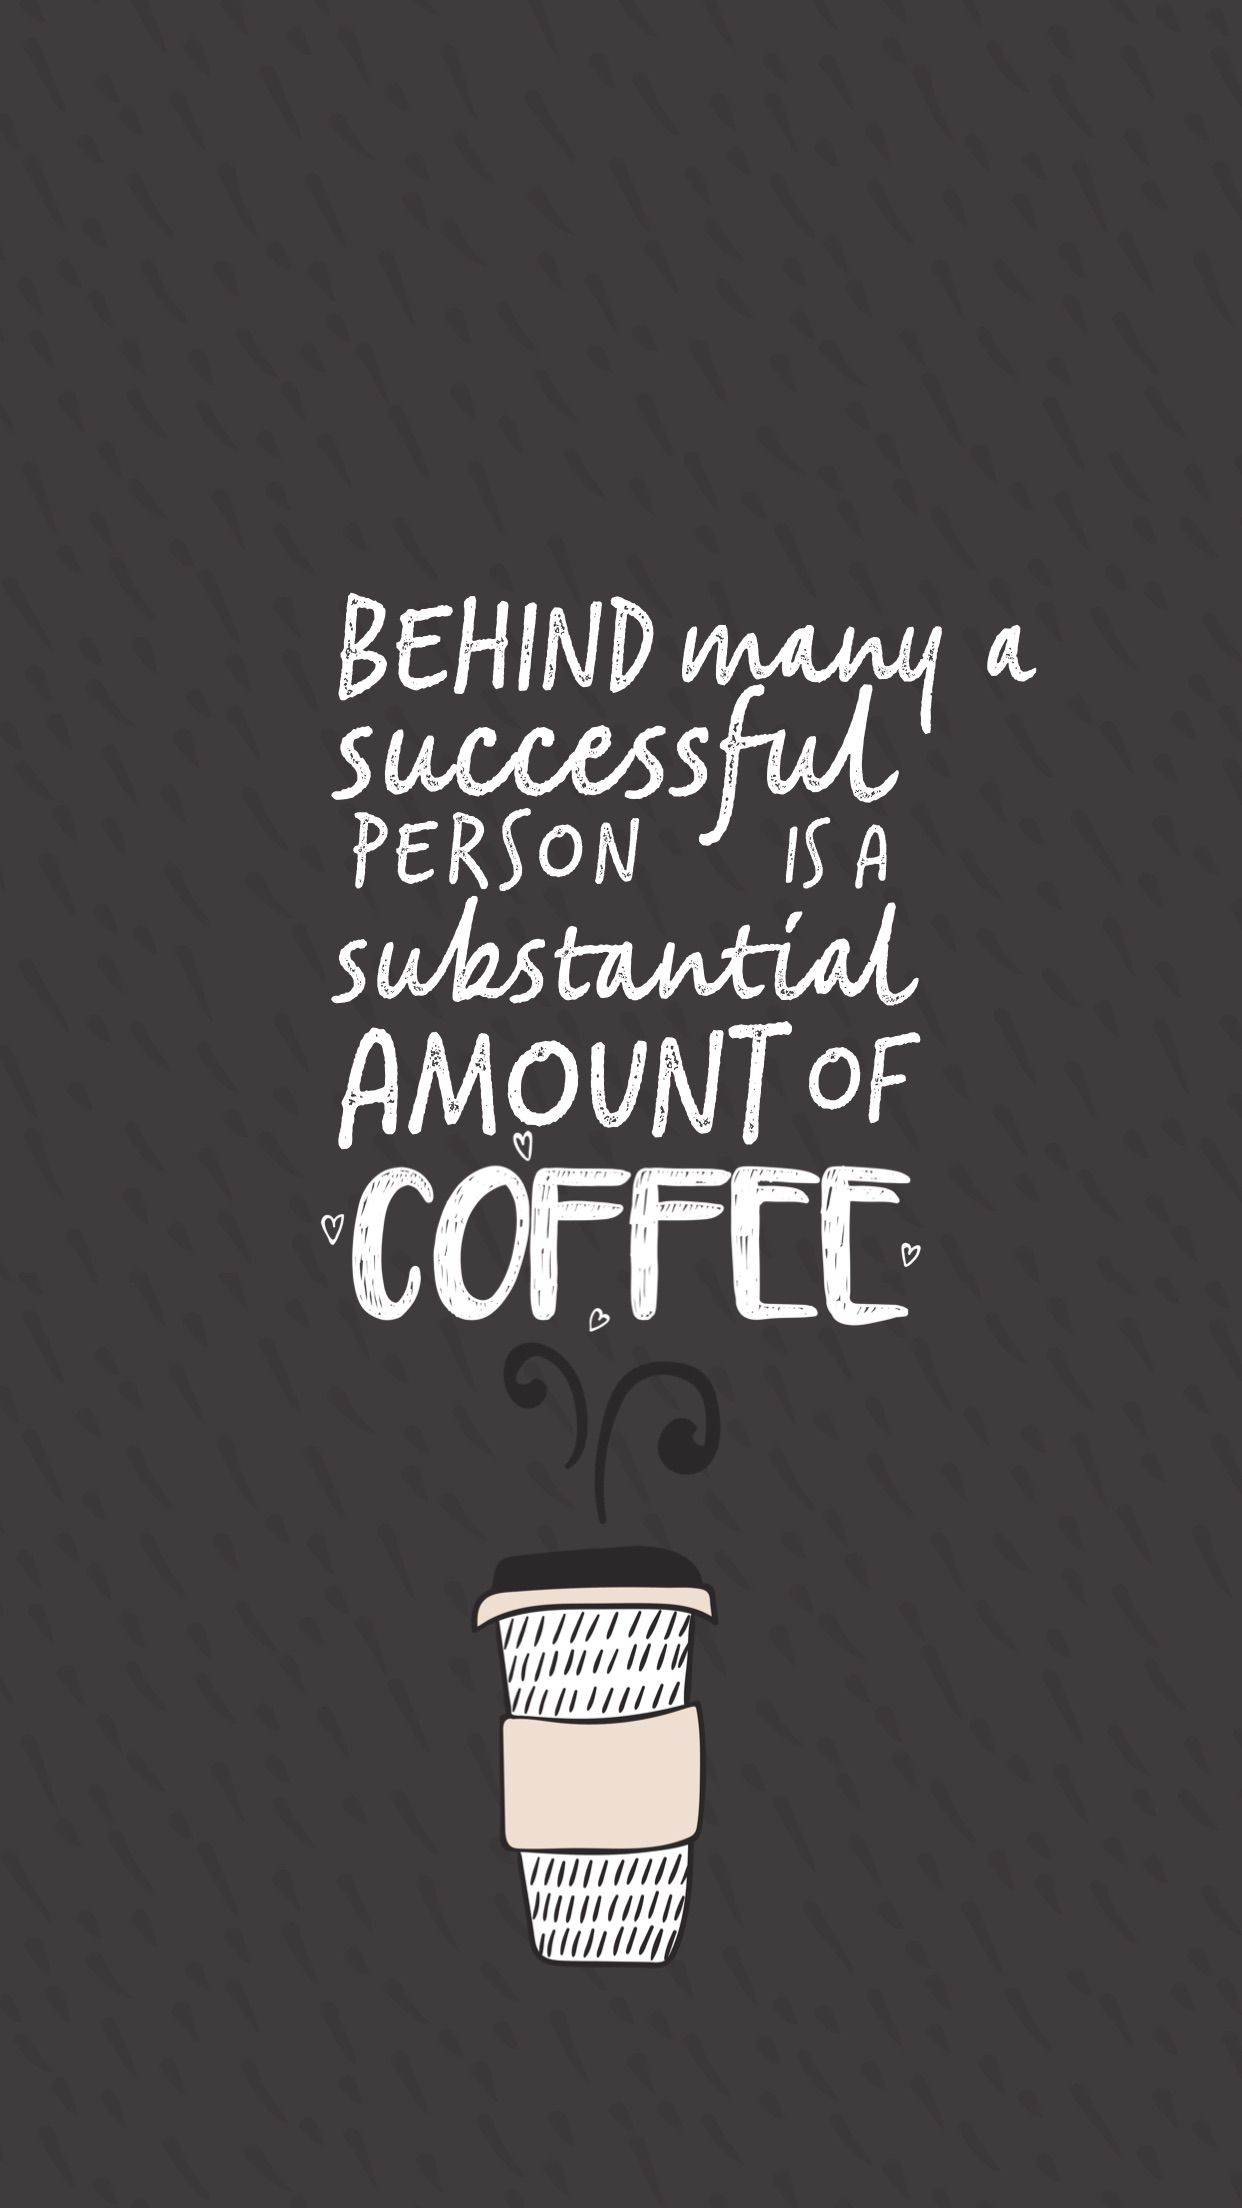 Behind Every Successful Person There Is A Substantial Amount Of Coffee Coffee Quotes Coffee And Books Coffee Study Grey Anatomy Quotes